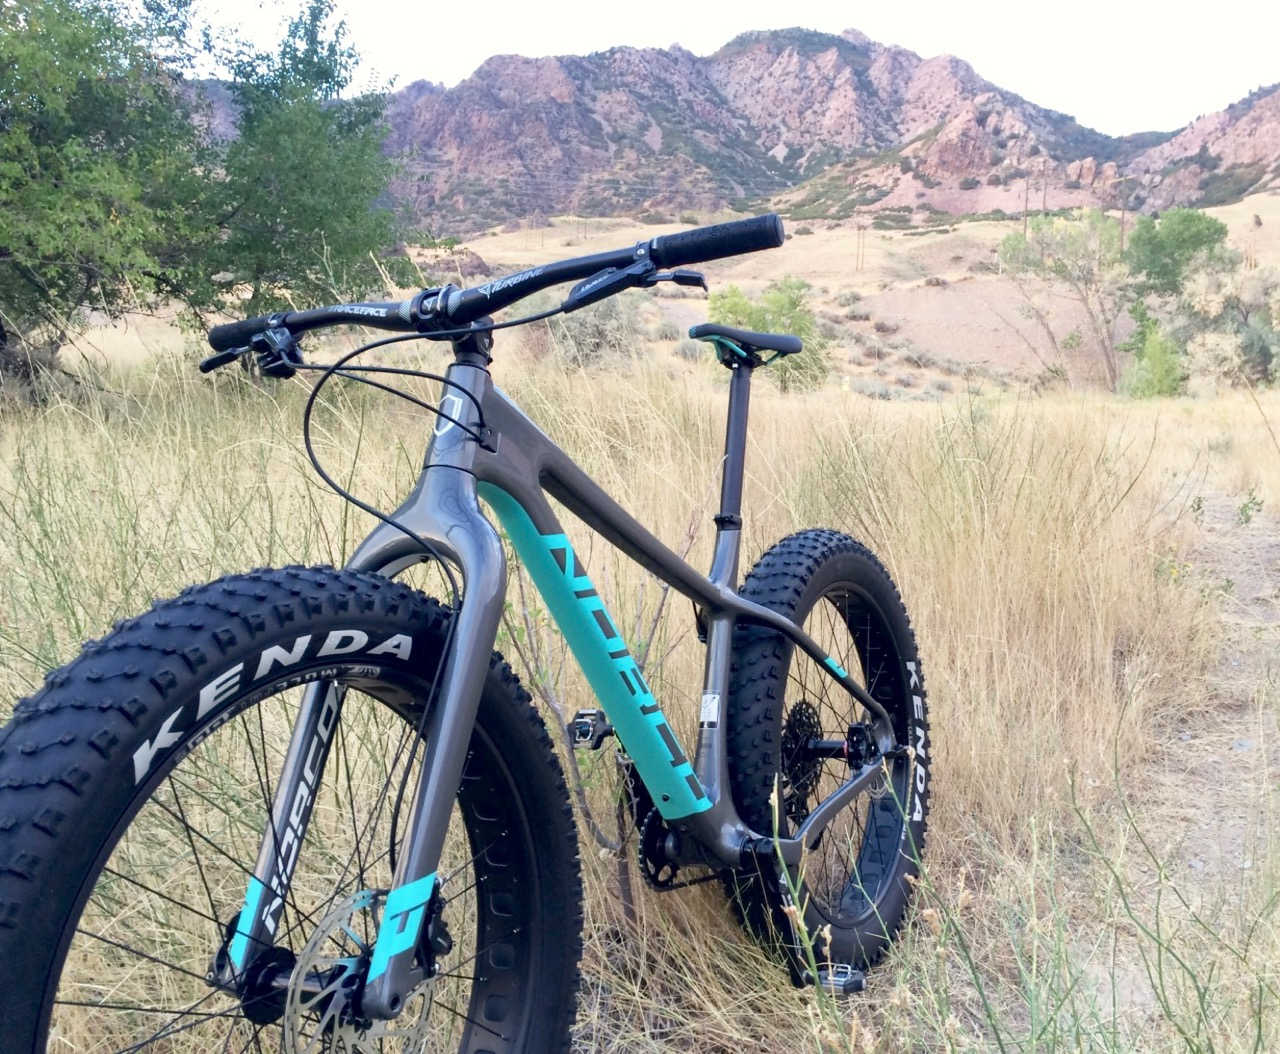 Review Norco Ithaqua 6 2 Incredible Dirt And Snow